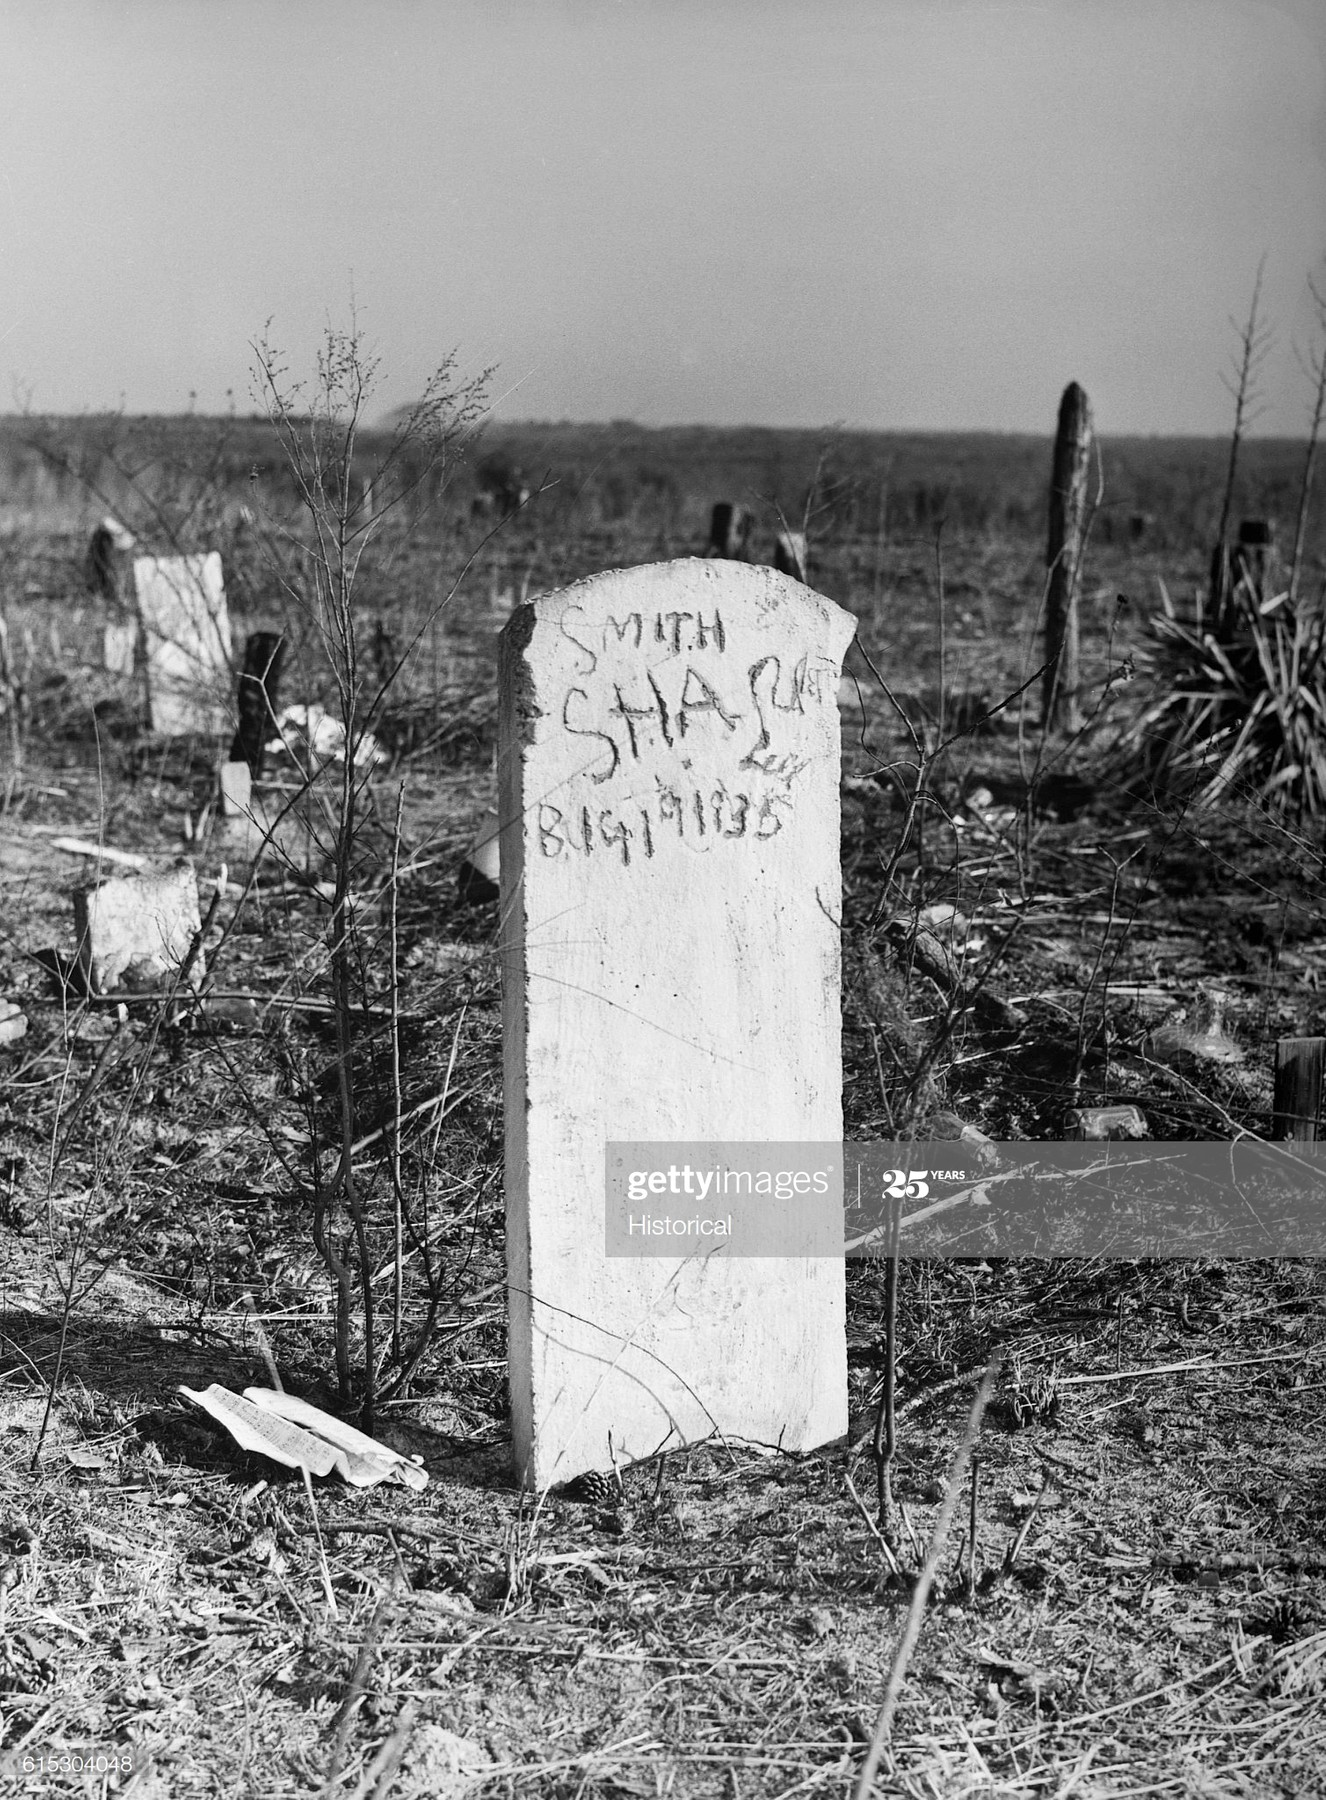 march-1941-a-negro-cemetery-on-abandoned-land-in-santeecooper-basin-picture-id615304048?s=2048x2048